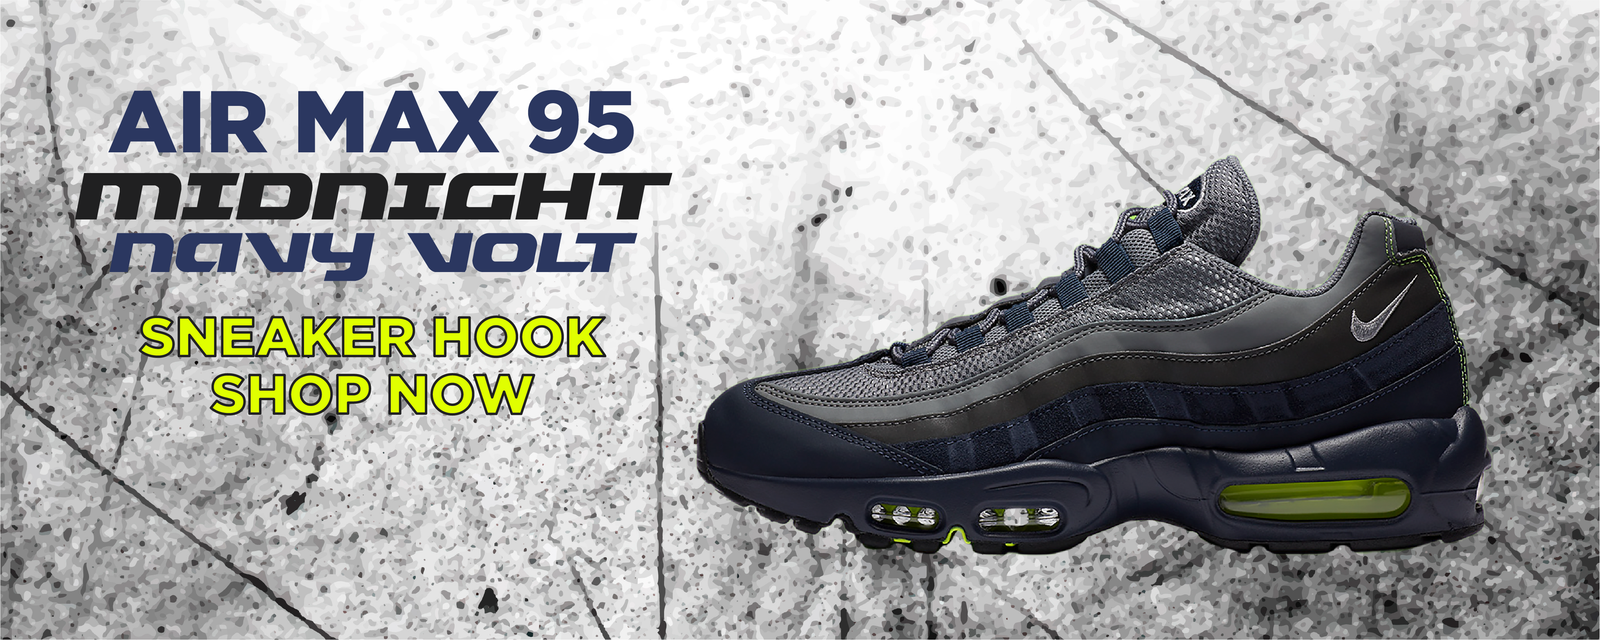 Air Max 95 Midnight Navy/Volt Clothing to match Sneakers | Clothing to match Nike Air Max 95 Midnight Navy/Volt Shoes